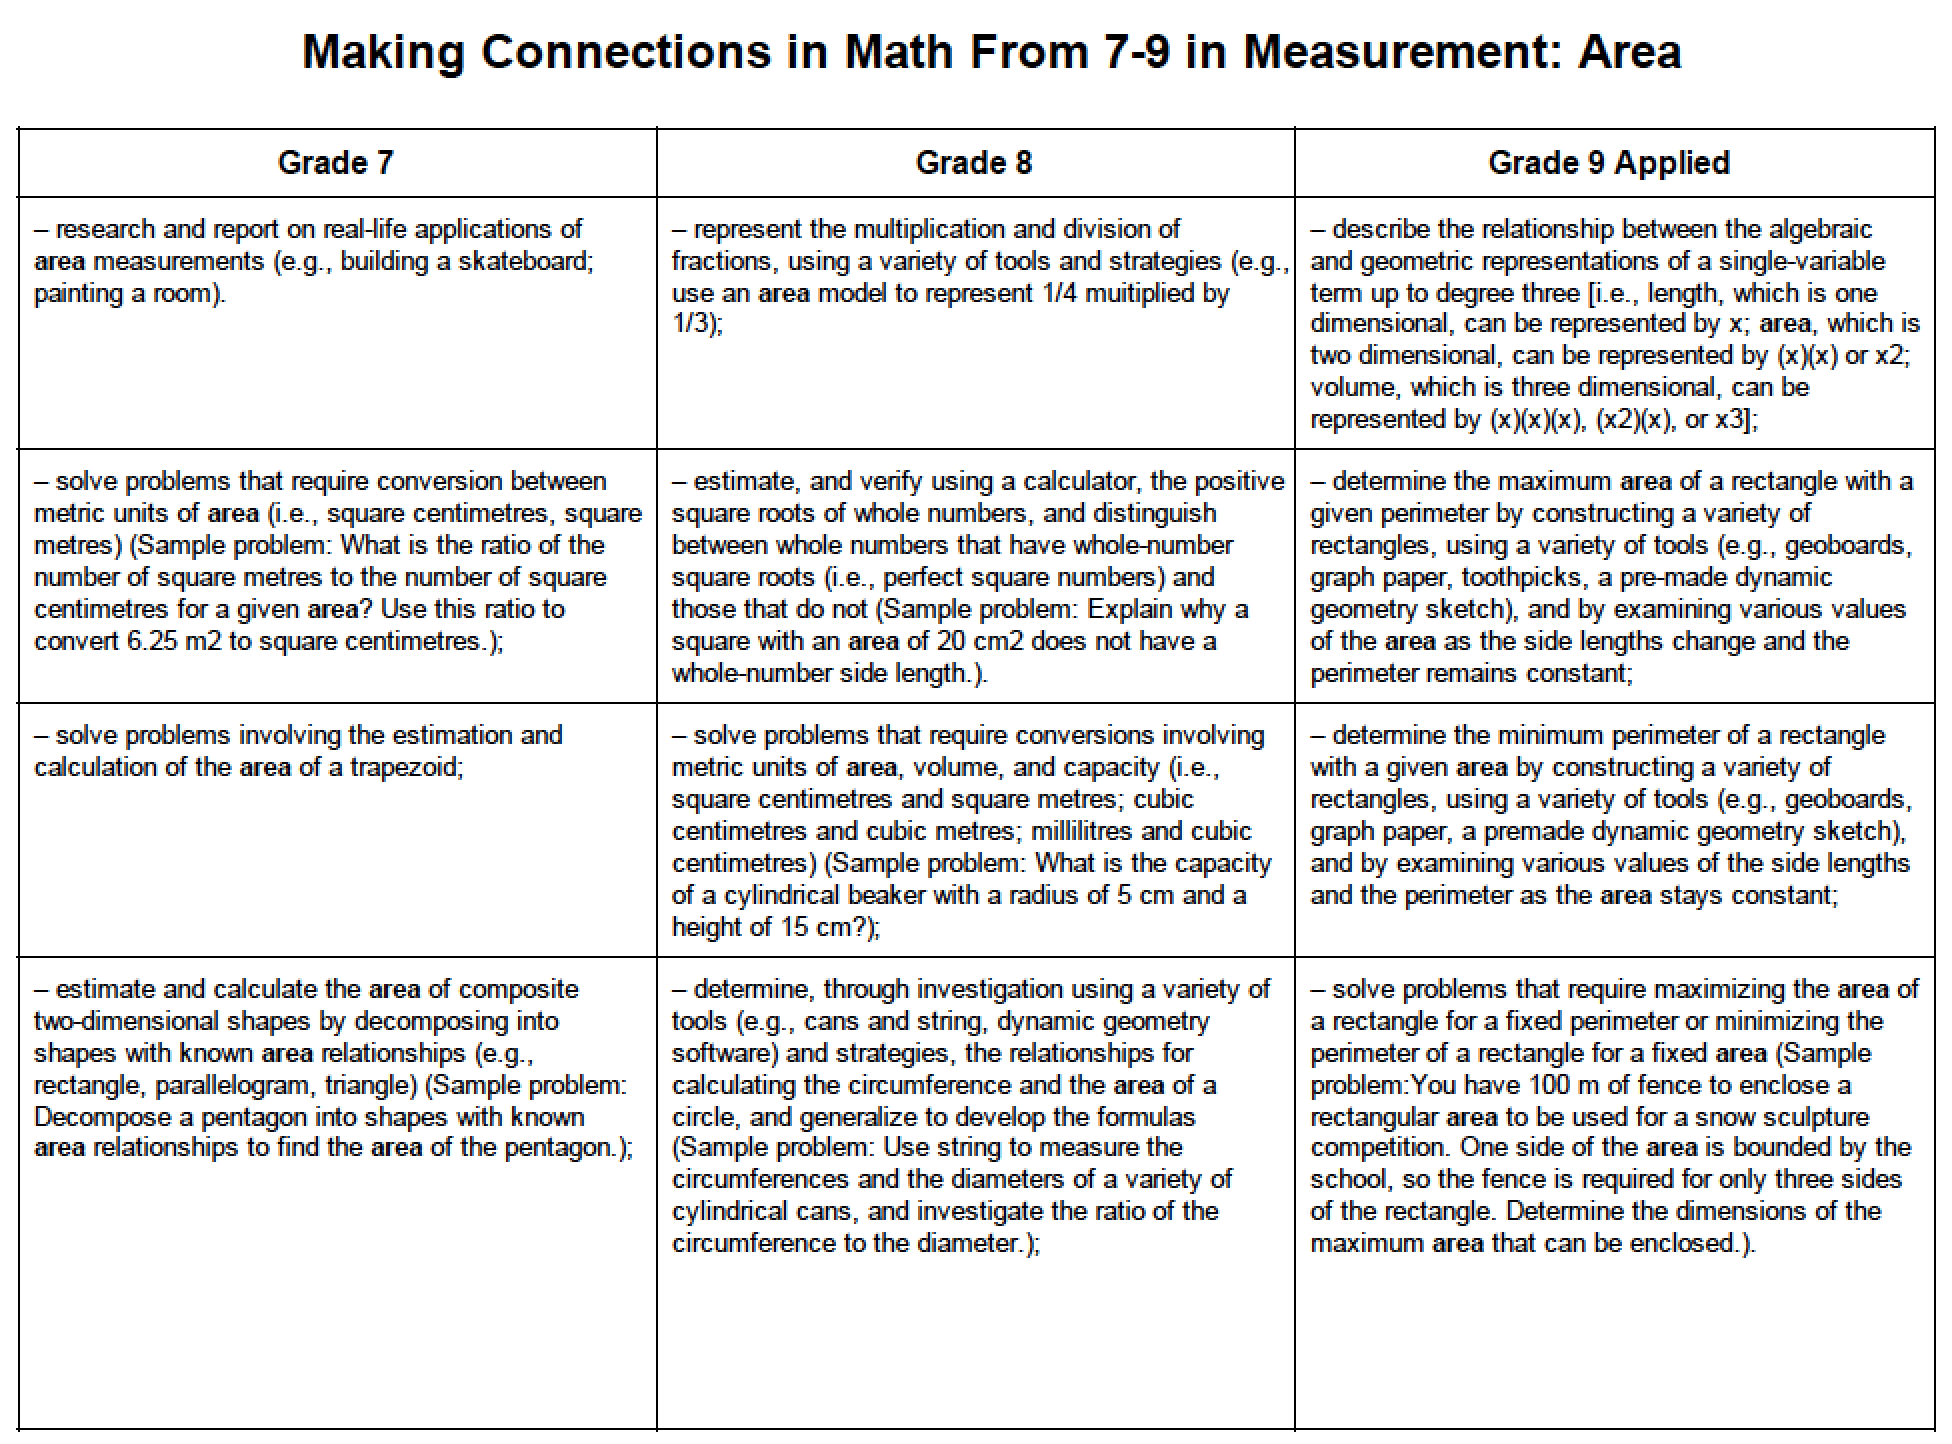 Making Connections From Grade 7 To 9 In Measurement